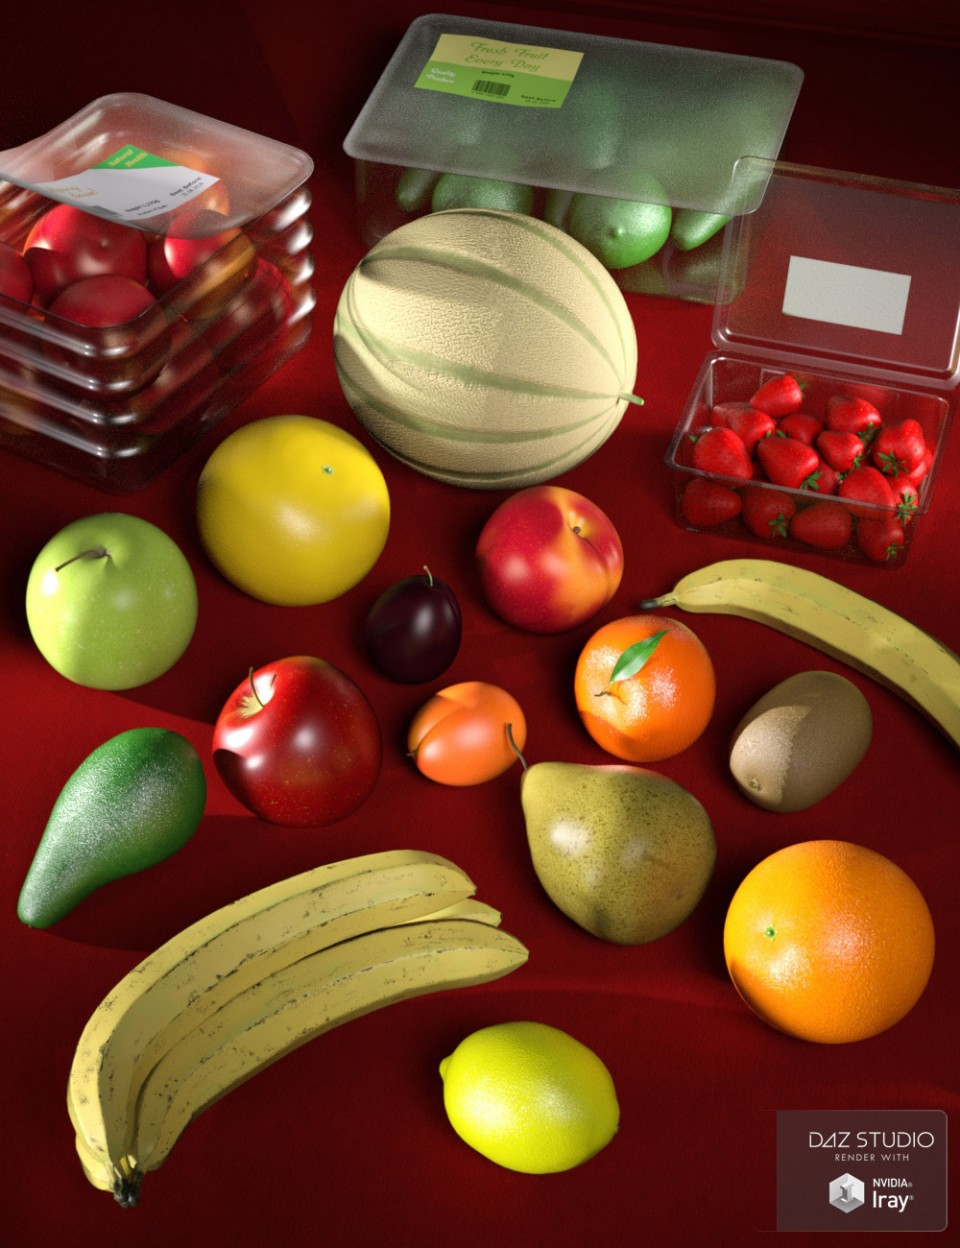 Everyday Fruit_DAZ3D下载站